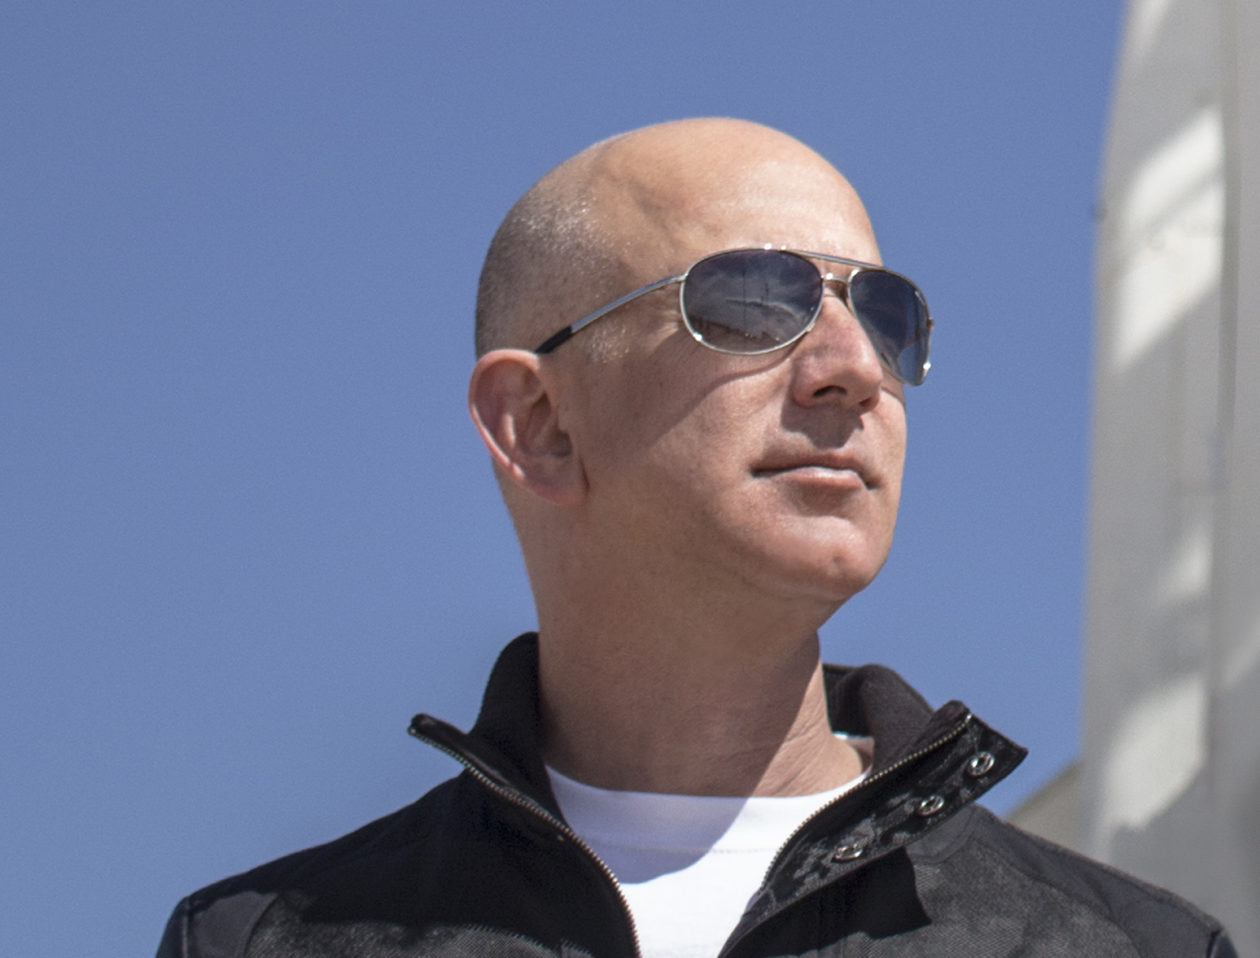 With $150B net worth, Jeff Bezos is the richest person in modern history as Amazon stock approaches $2K ...